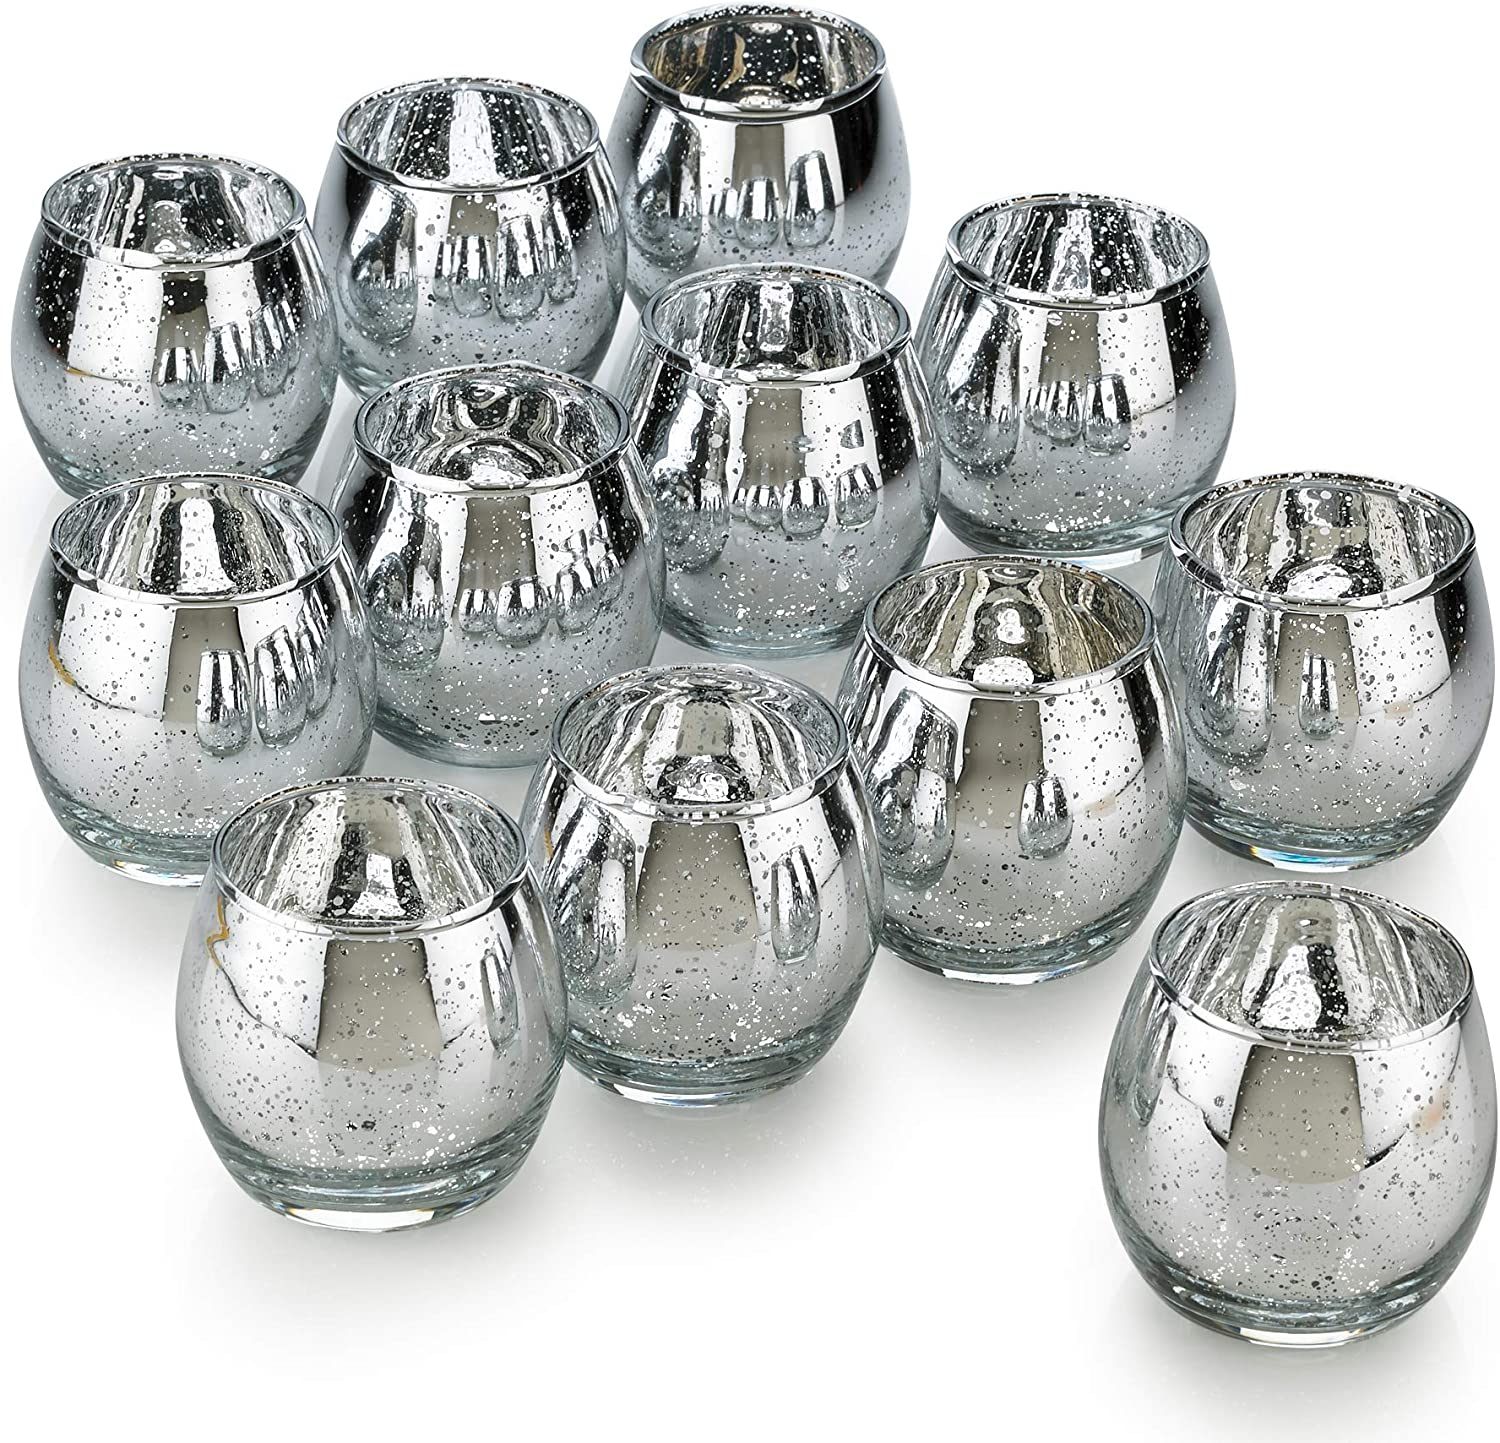 PARNOO Hurricane Silver Candle Holders Mercury Glass for Votive Candles and Tealight Set of 12 – Sparkled Silver Finish Perfect for Wedding, Parties and Home Decor